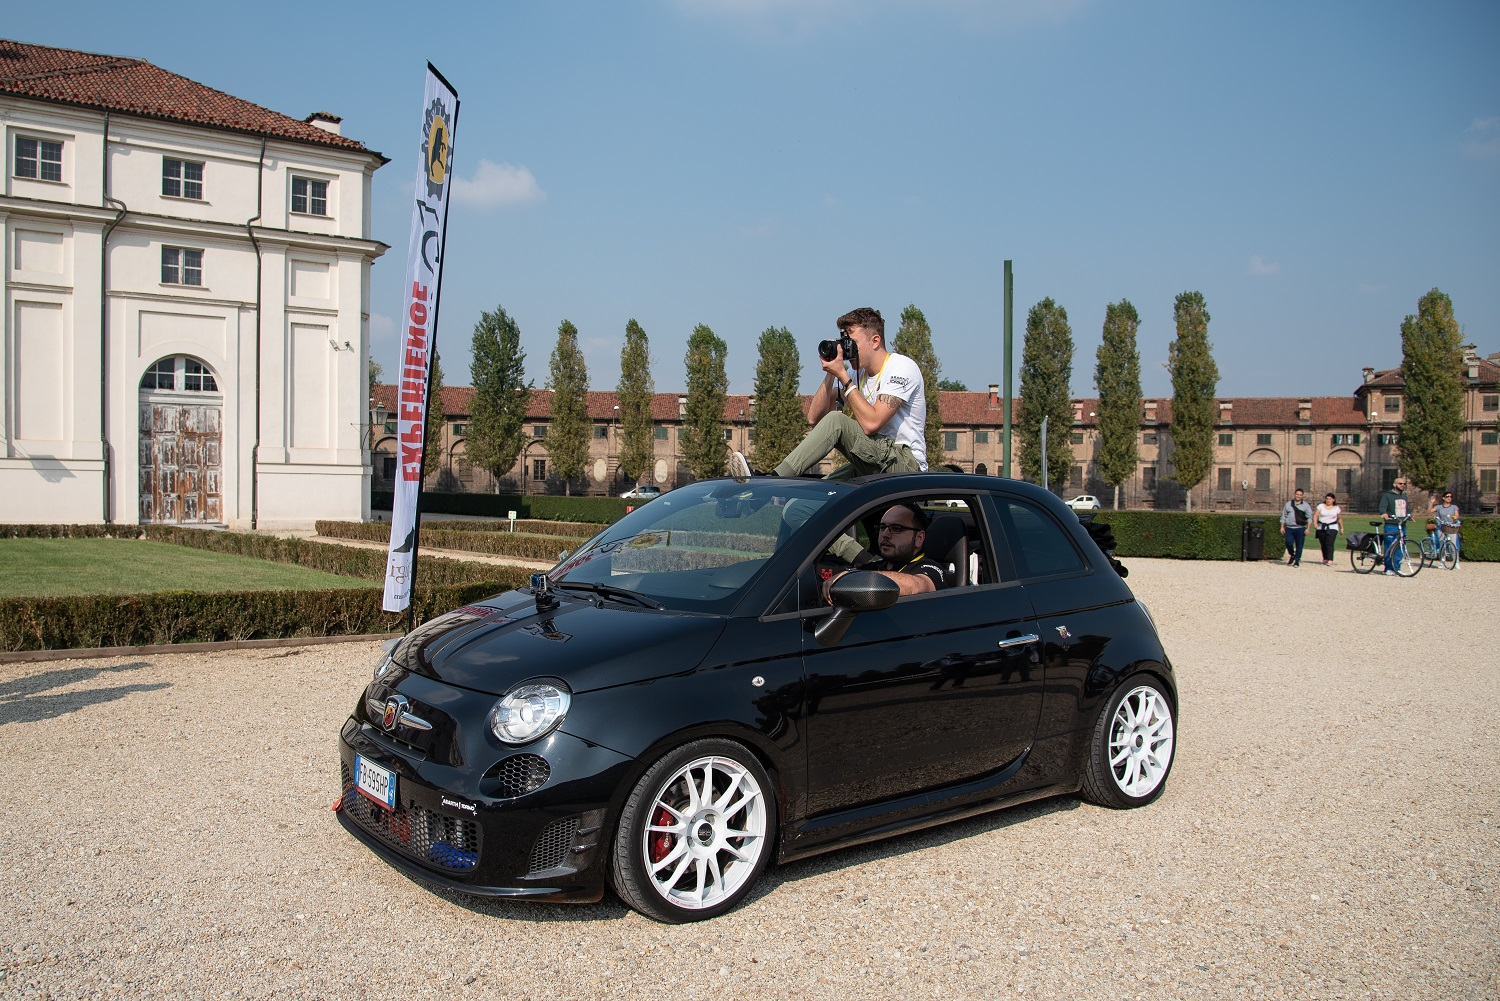 457 STUPINIGI SWEET HOME EXPERIENCE 2018 - ABARTH CLUB TORINO